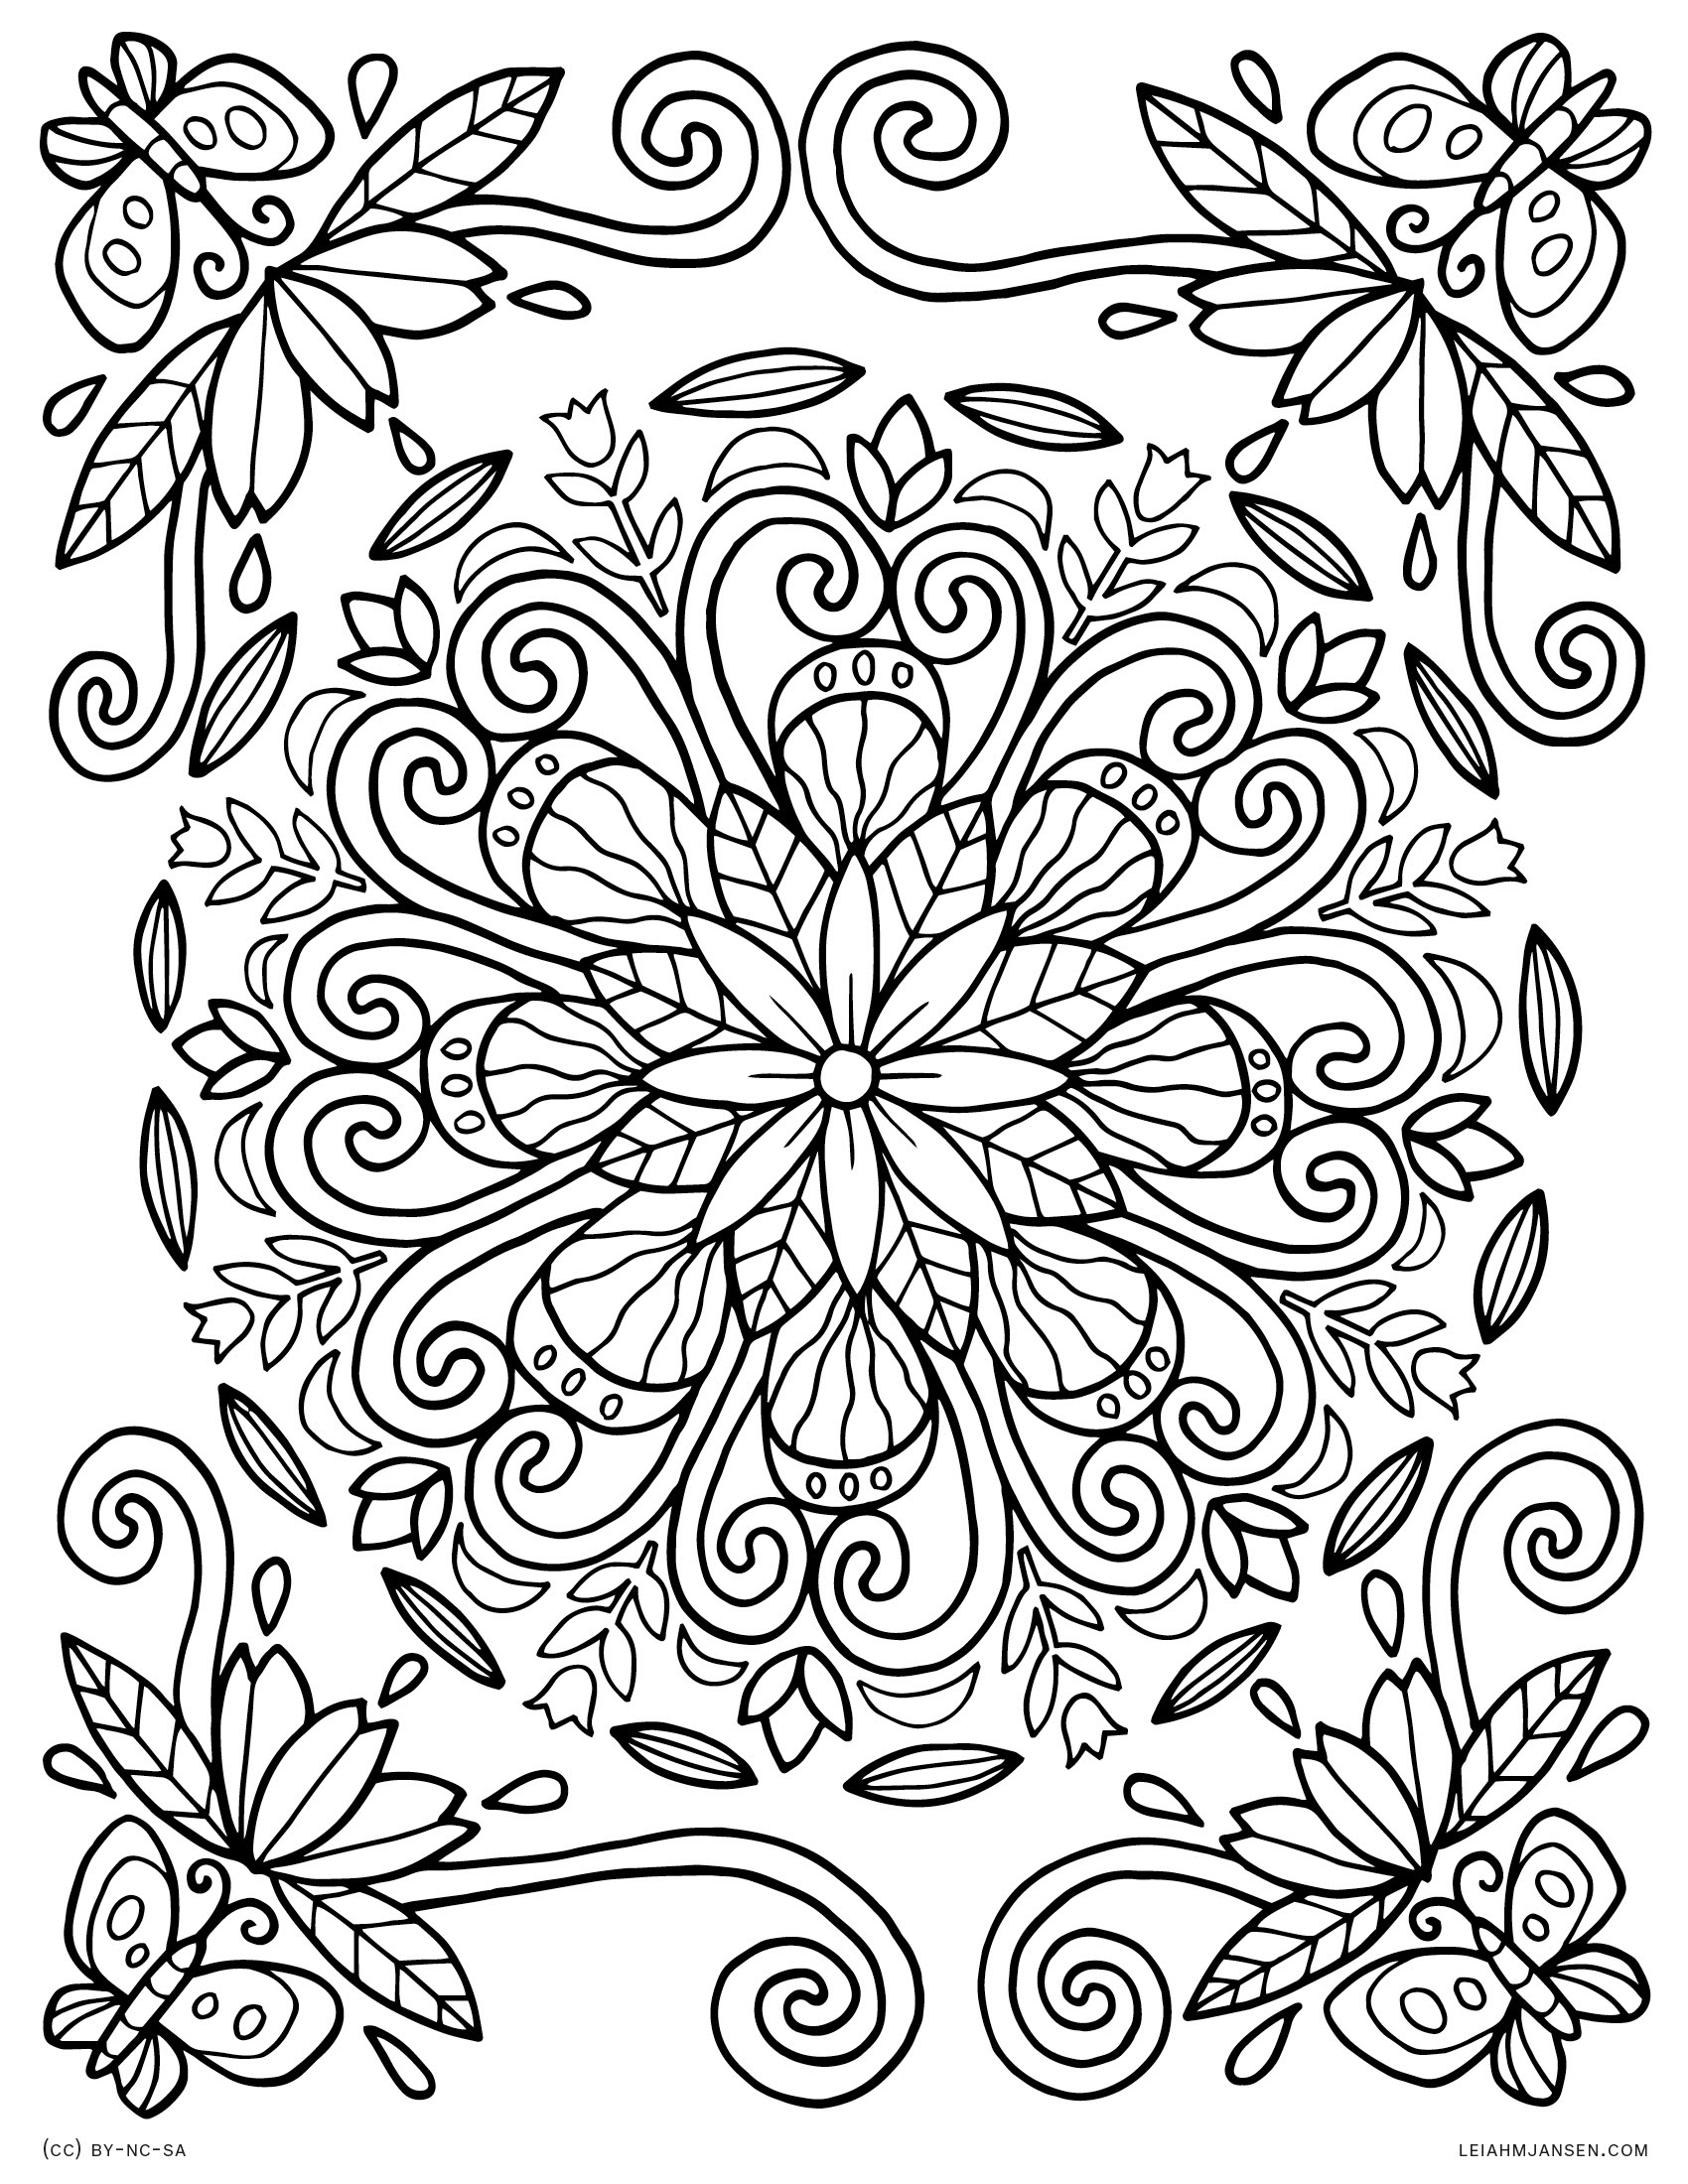 820 Top Free Printable Mandala Coloring Pages For Adults Easy For Free